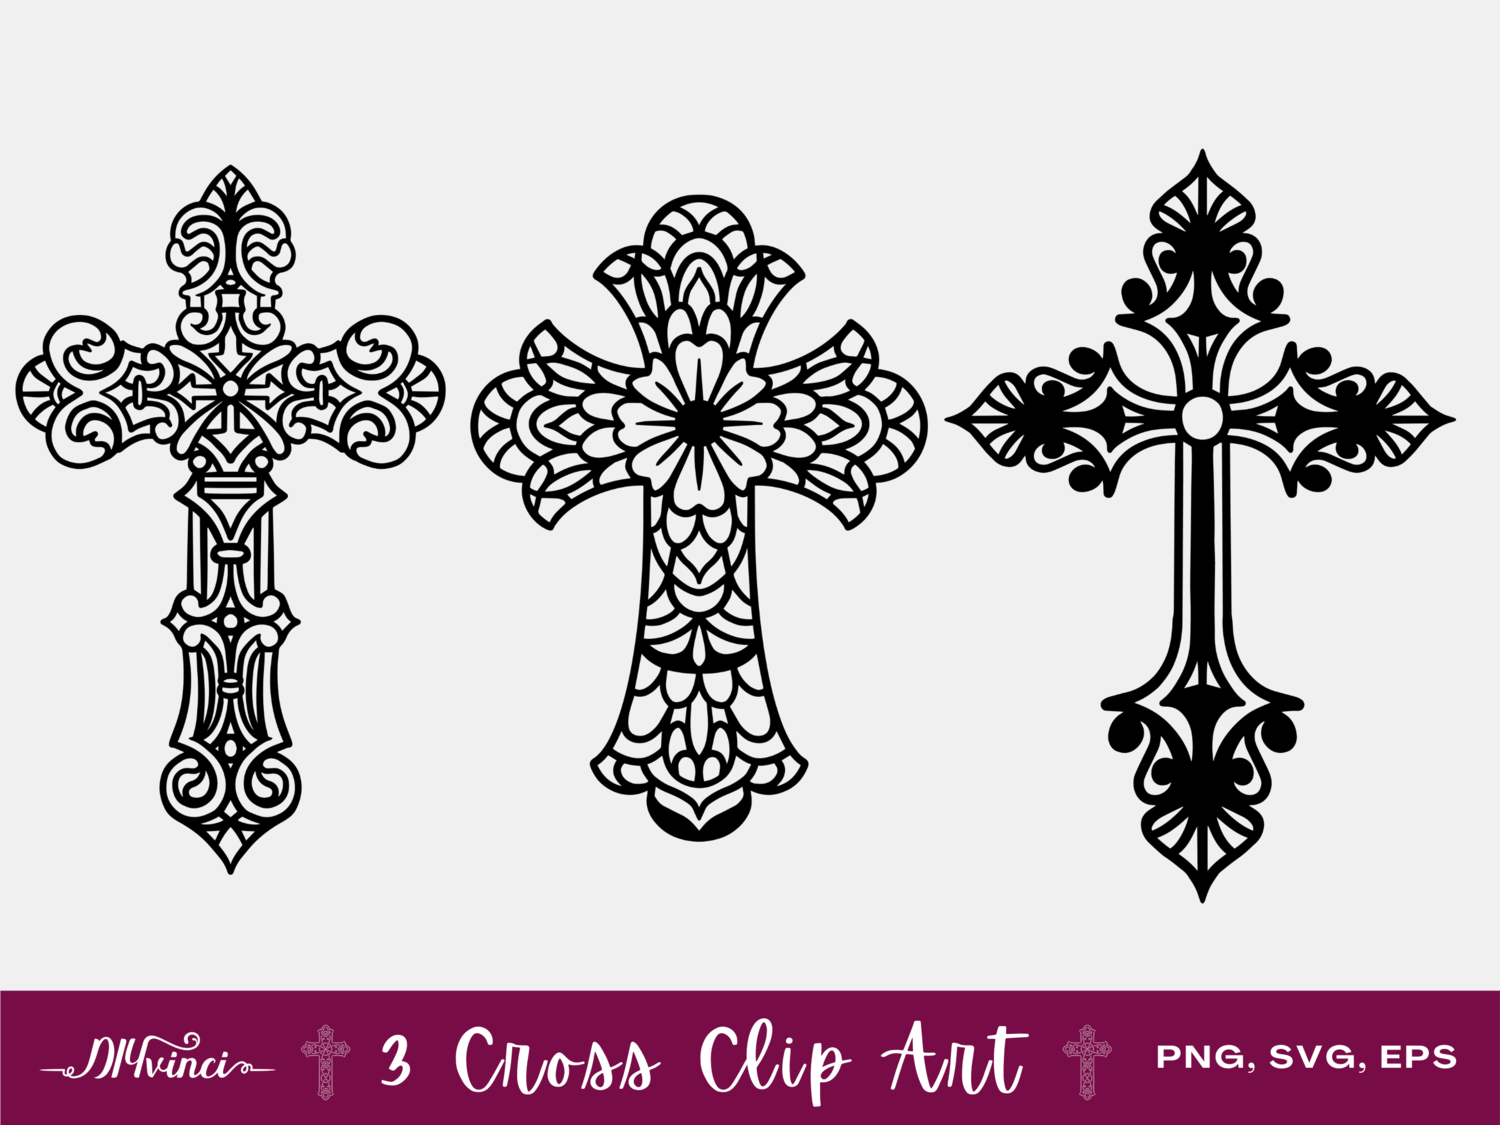 3 Cross Clip Art - PNG, SVG, EPS - Personal & Commercial Use